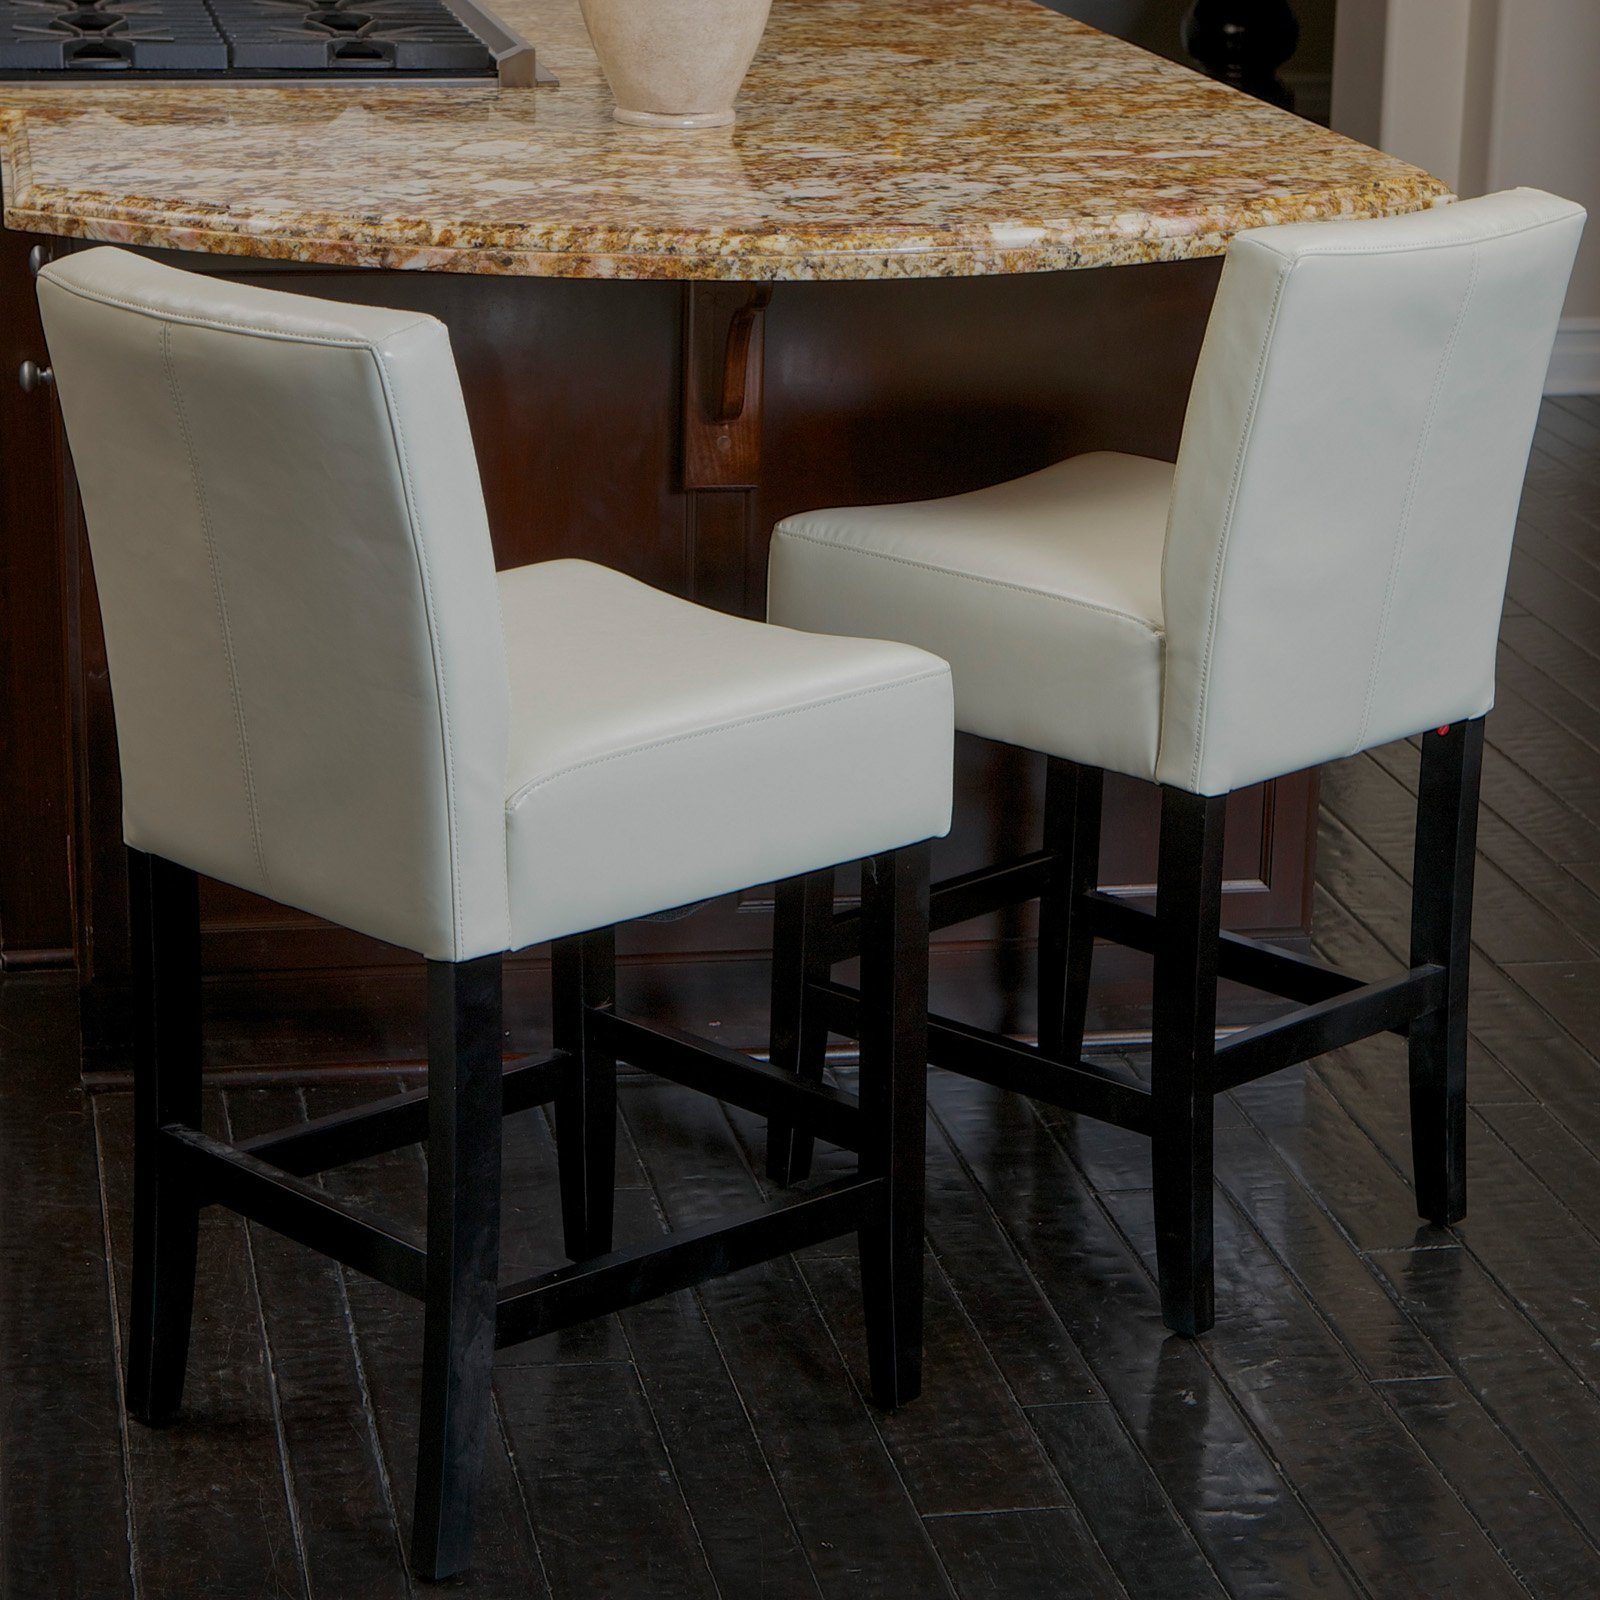 Lopez Ivory Leather Counter Stools 2 Pack Walmart Com